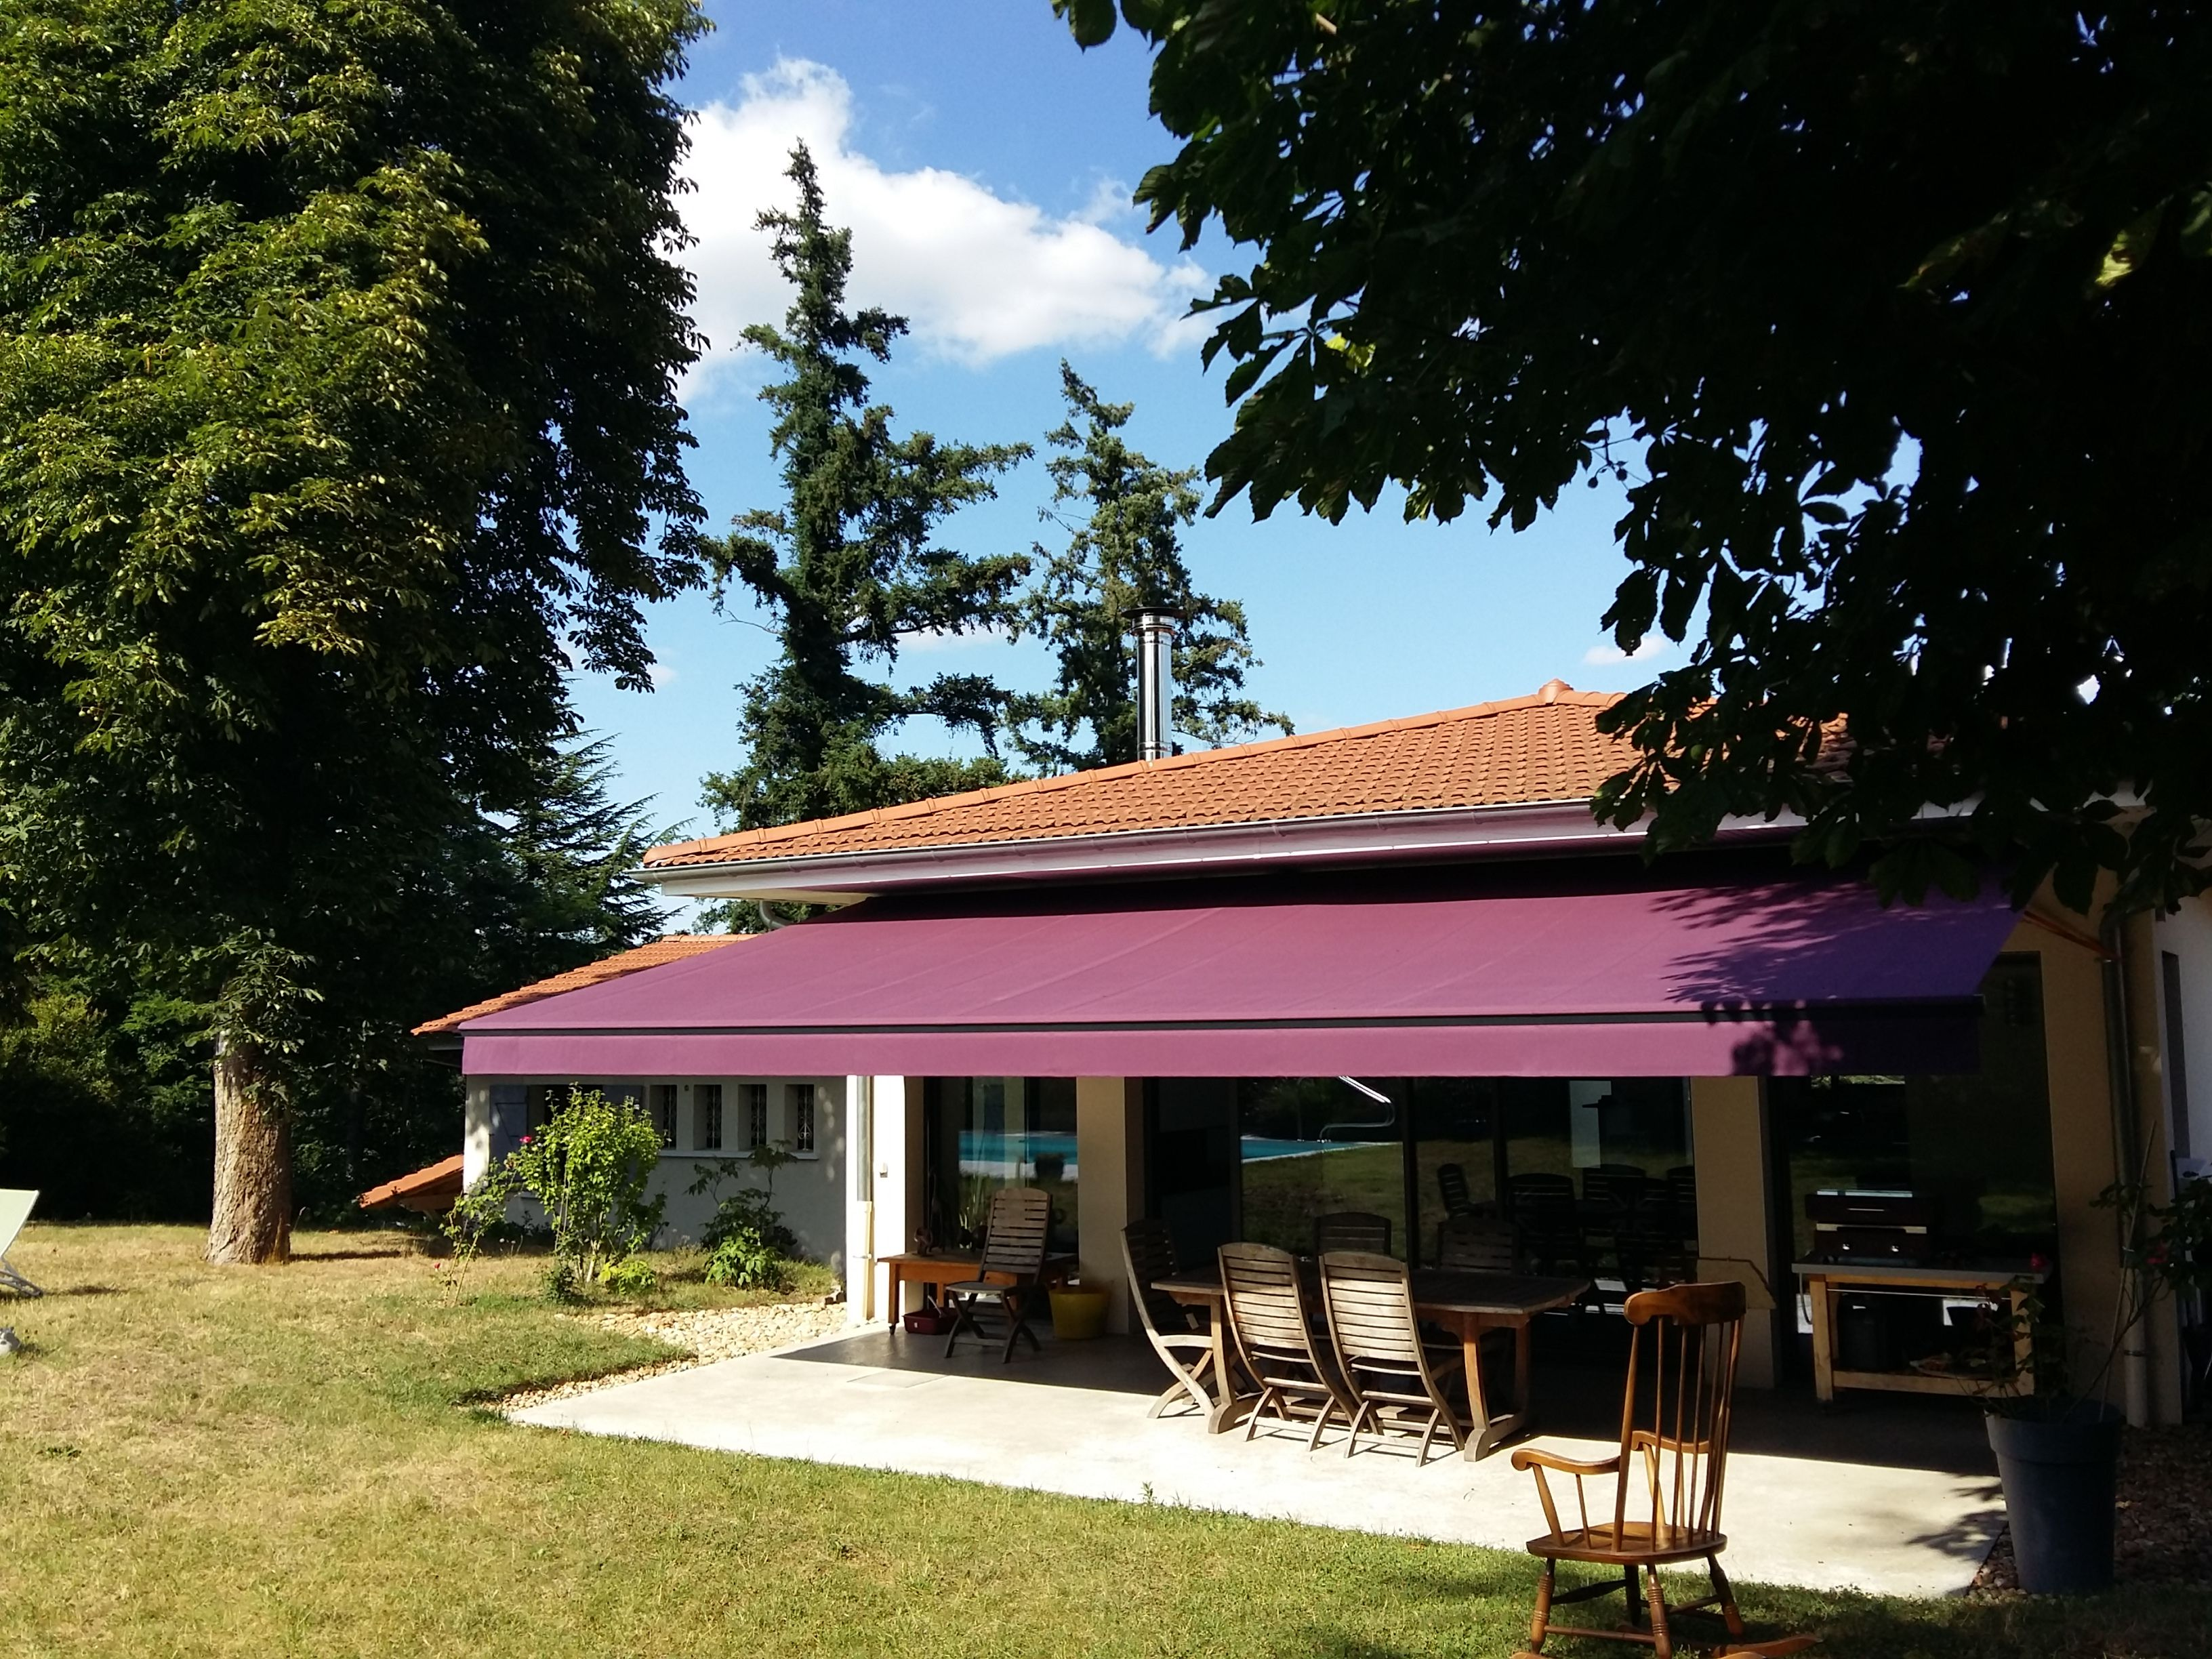 Store Retractable Exterieur Store Banne Pourpre Purple Awning Alligastore Storiste Lyon